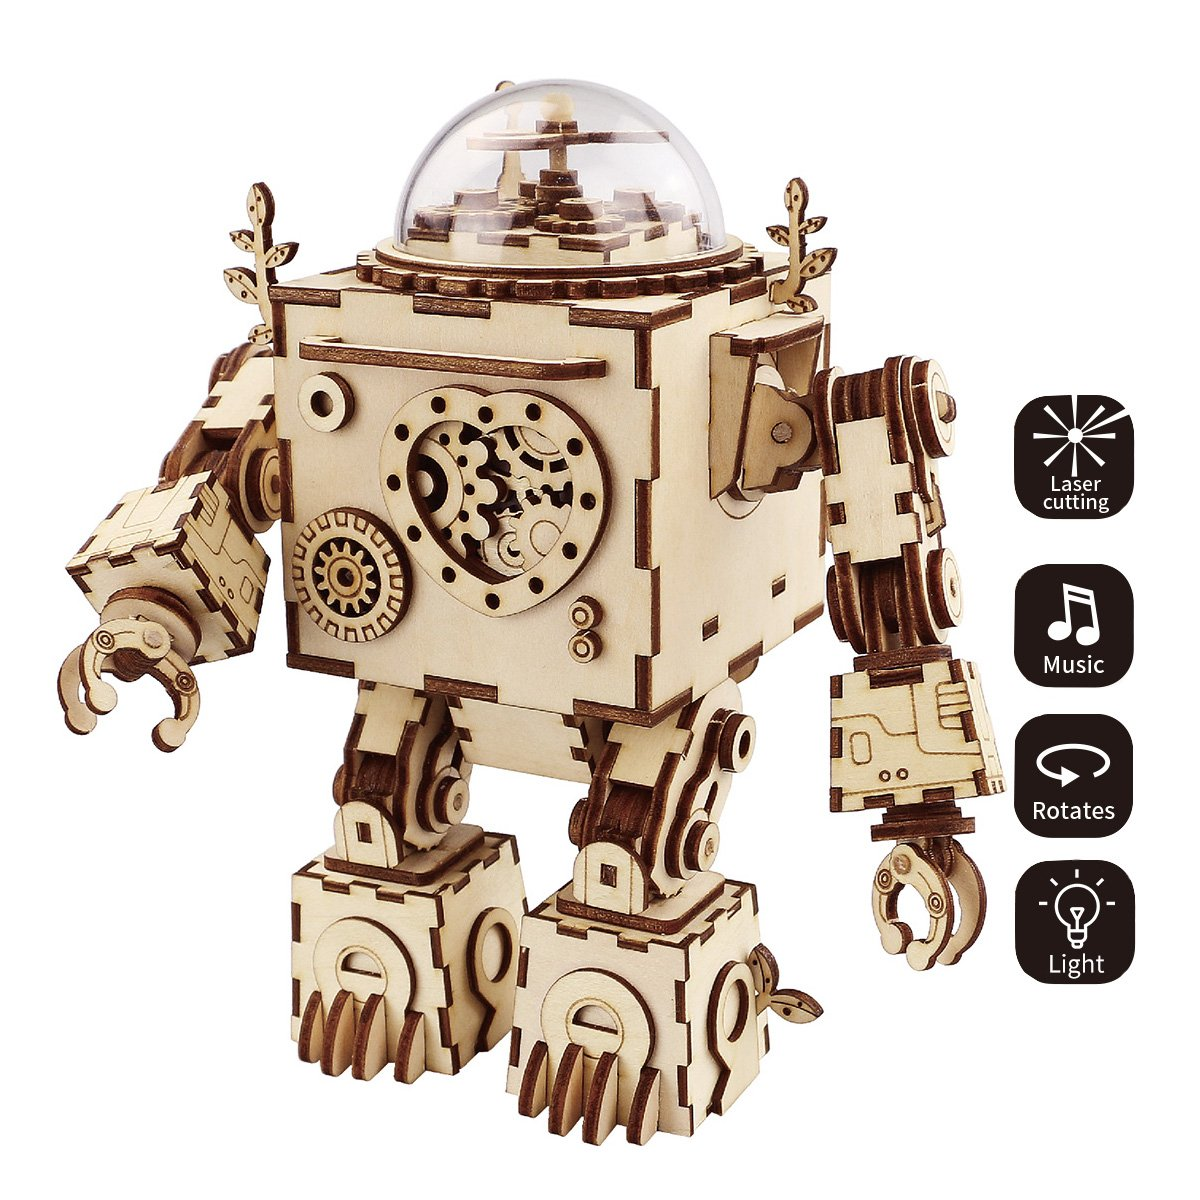 ROKR 3D wooden Music Box Machinarium with Light-Laser Cut Craft Kit-DIY Robot Toy For Boys and Girls-Creative Gift for Christmas/Birthday/Valentine's Day